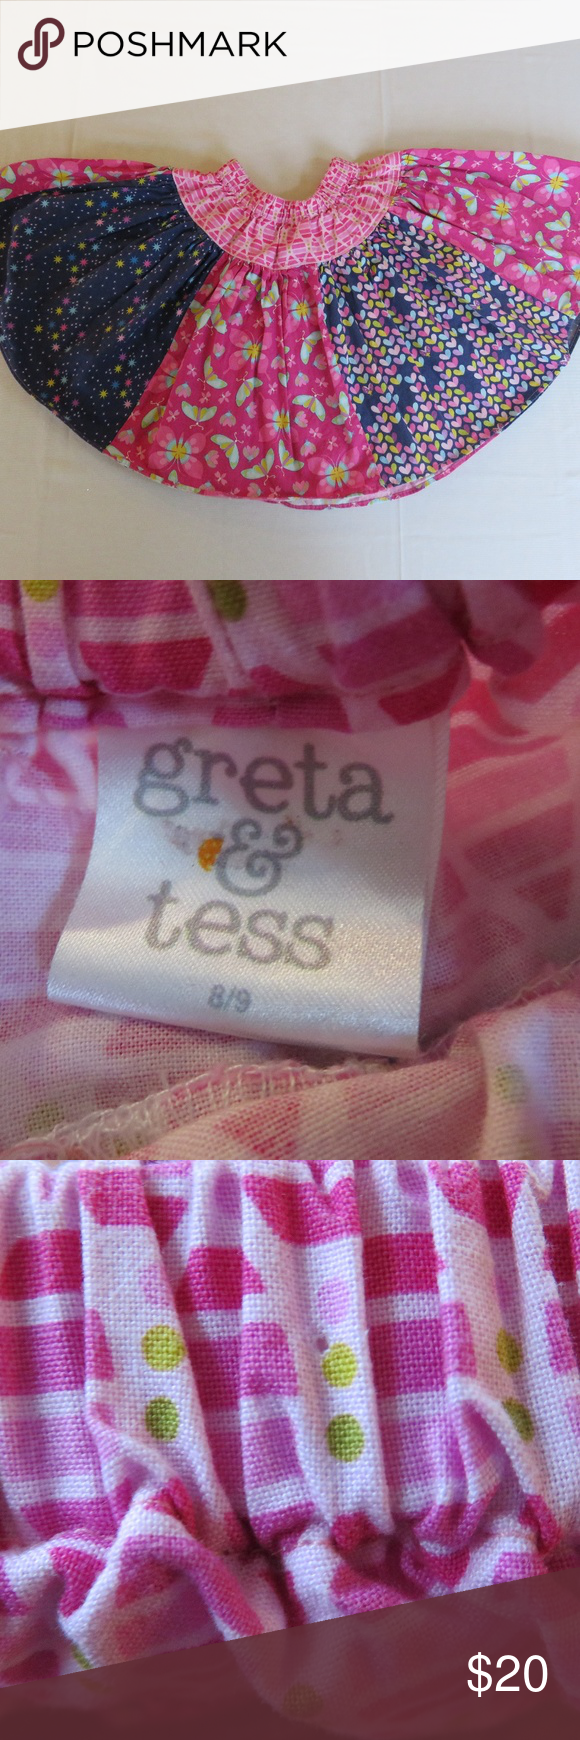 Greta & Tess Boutique Twirl Skirt Girls 8/9 This super-cute, very twirly skirt in a girls size 8/9 is from Greta & Tess, a boutique clothing brand.The skirt's panels feature butterflies, stars and hearts in shades of blue, purple, pink and yellow. It's in good used condition for normal wash wear and a pinhole in the front along the elastic waistband (see picture). Although the skirt doesn't have a tag describing the material, it feels like cotton.  Bundle: I have another Greta & Tess skirt size  #twirlskirt